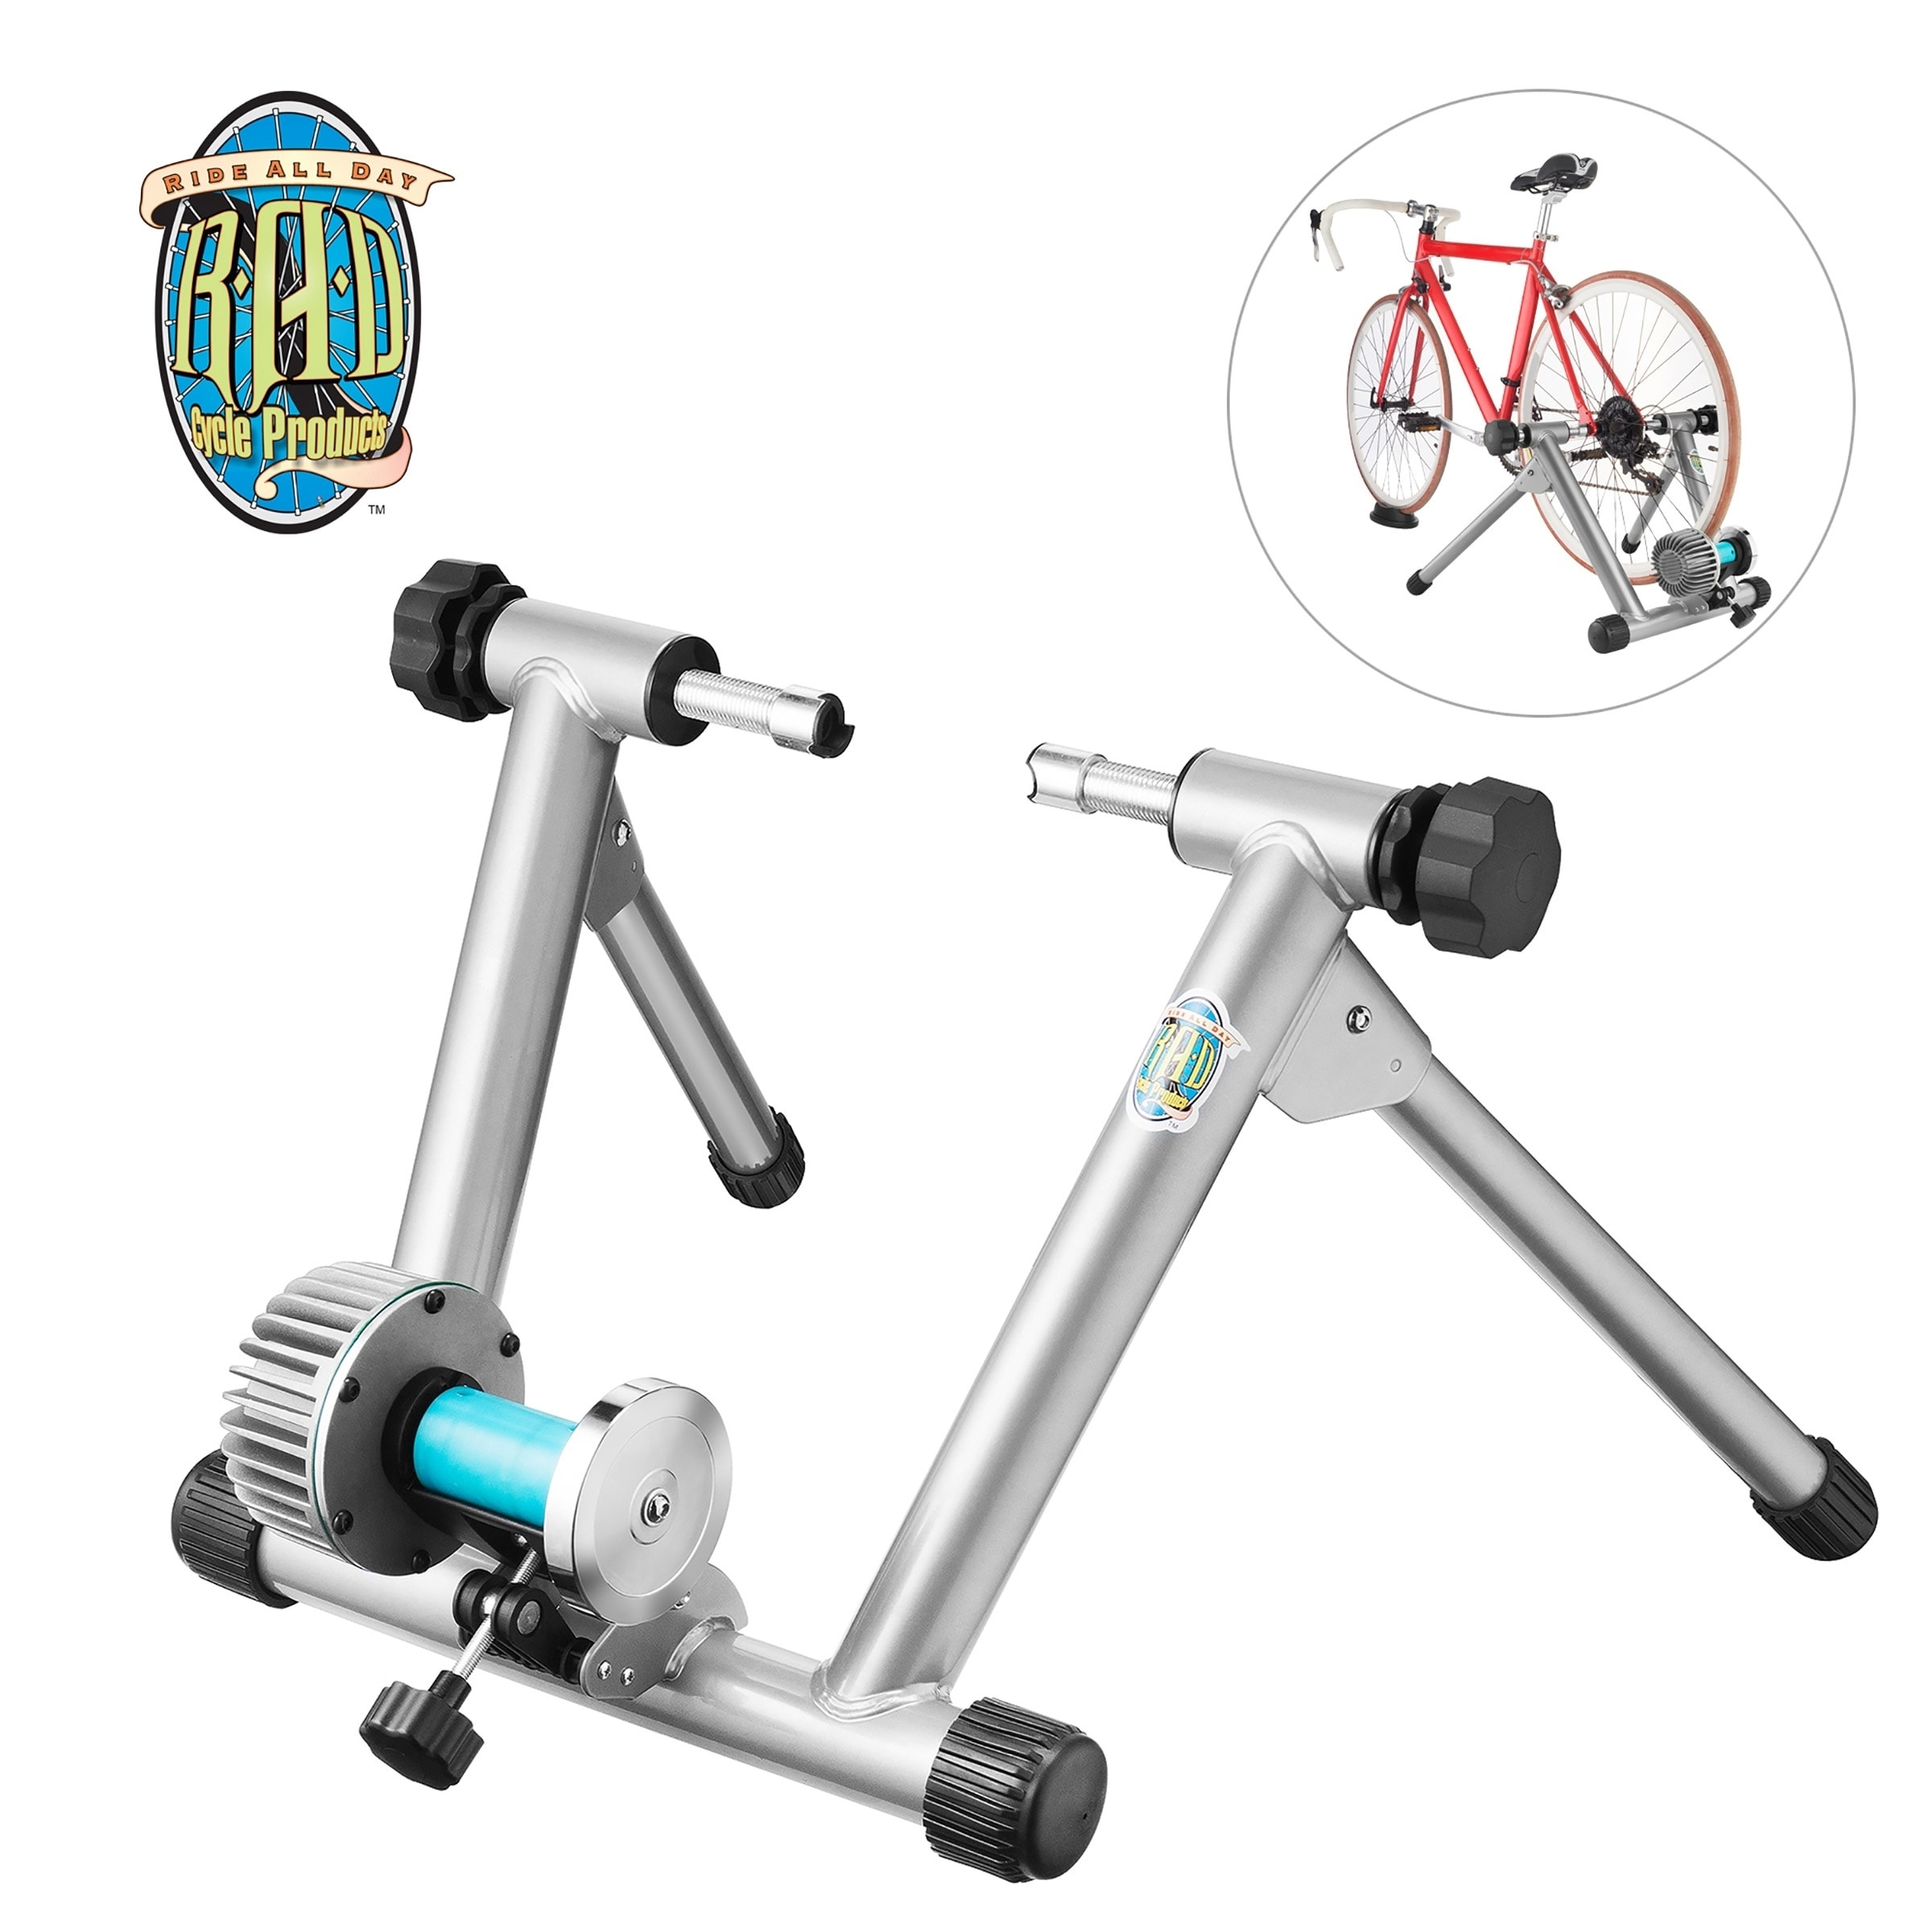 Fluid Bike Trainer >> Shop Rad Cycle Hydromag Trainer Bicycle Trainer Portable Fluid